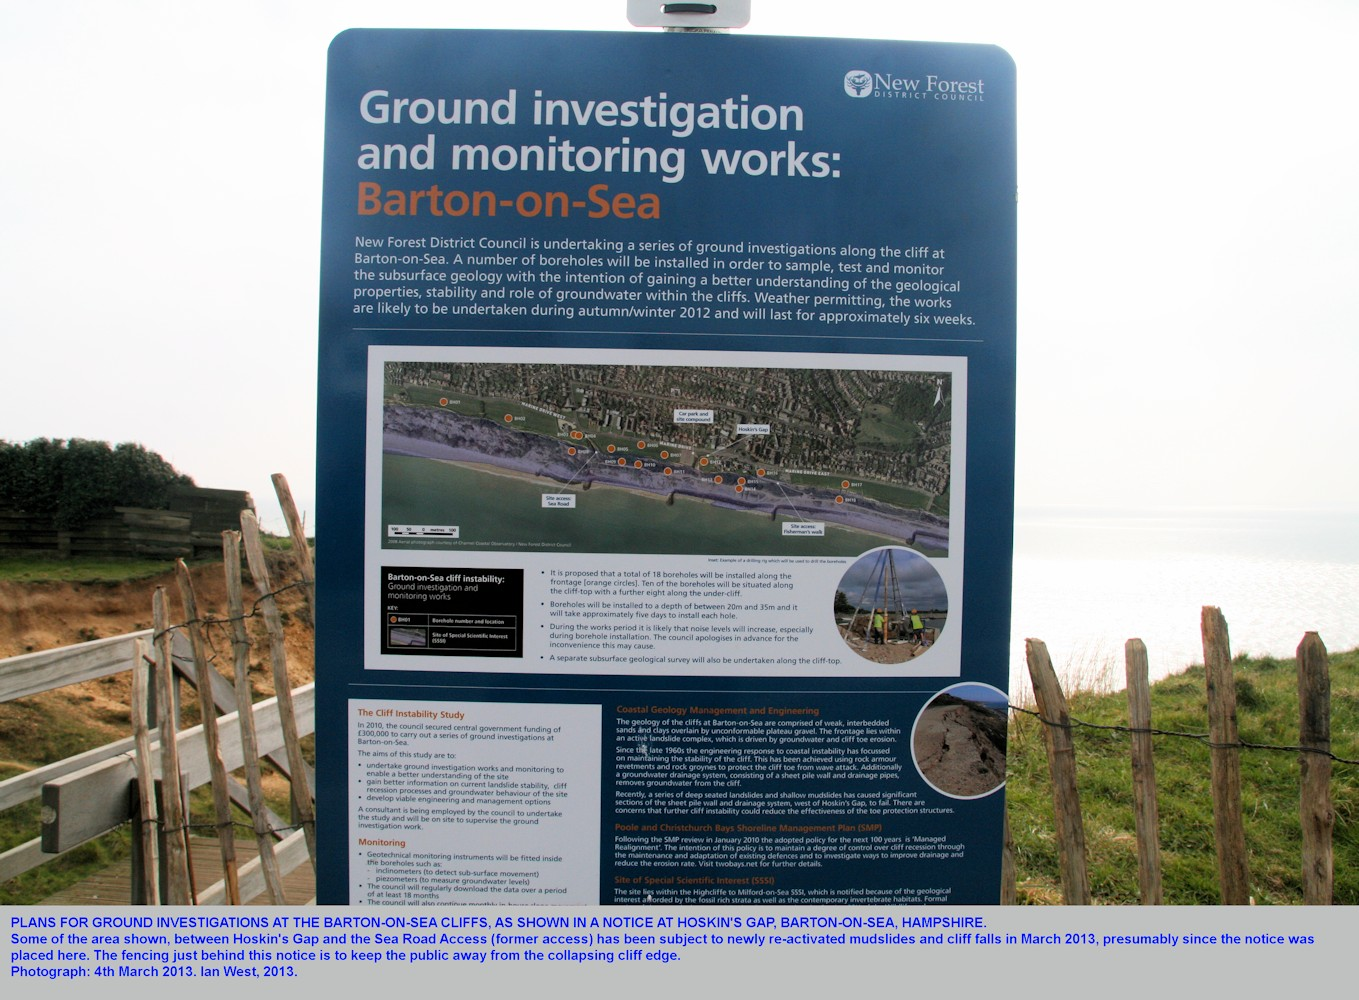 A notice about investigations into instability at Barton-on-Sea, Hampshire, 2013